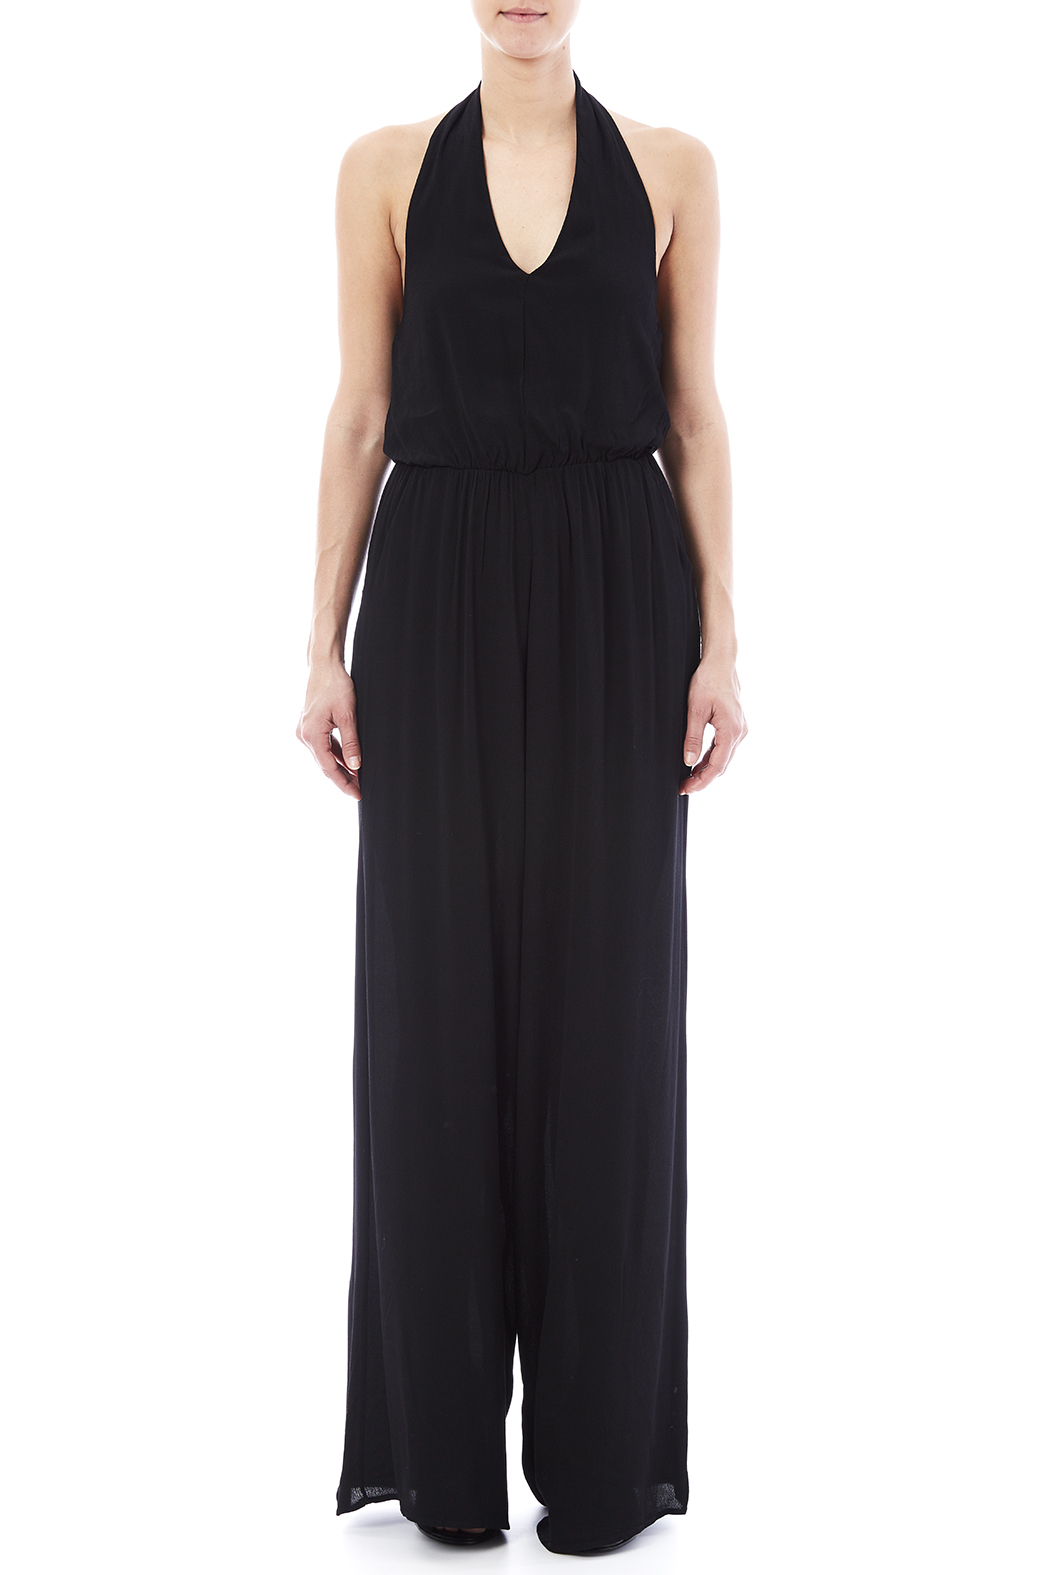 Bishop + Young Halter Jumpsuit - Front Cropped Image